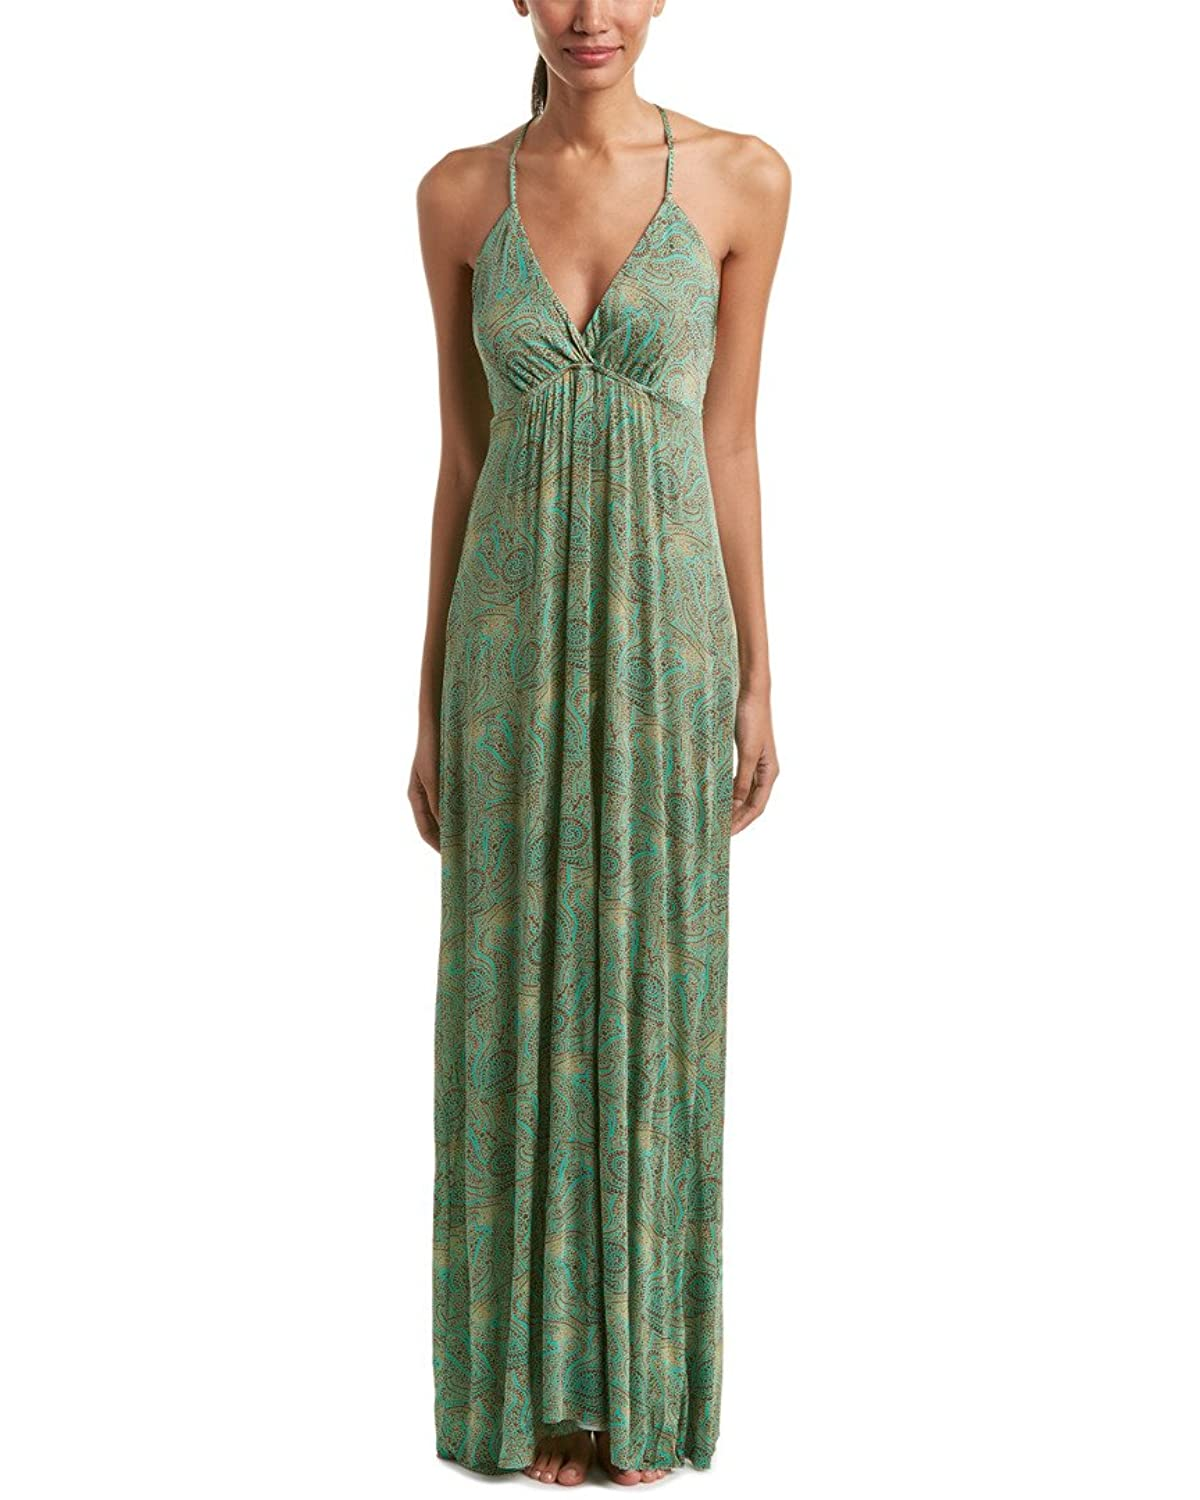 Vix Sandra Maxi Dress